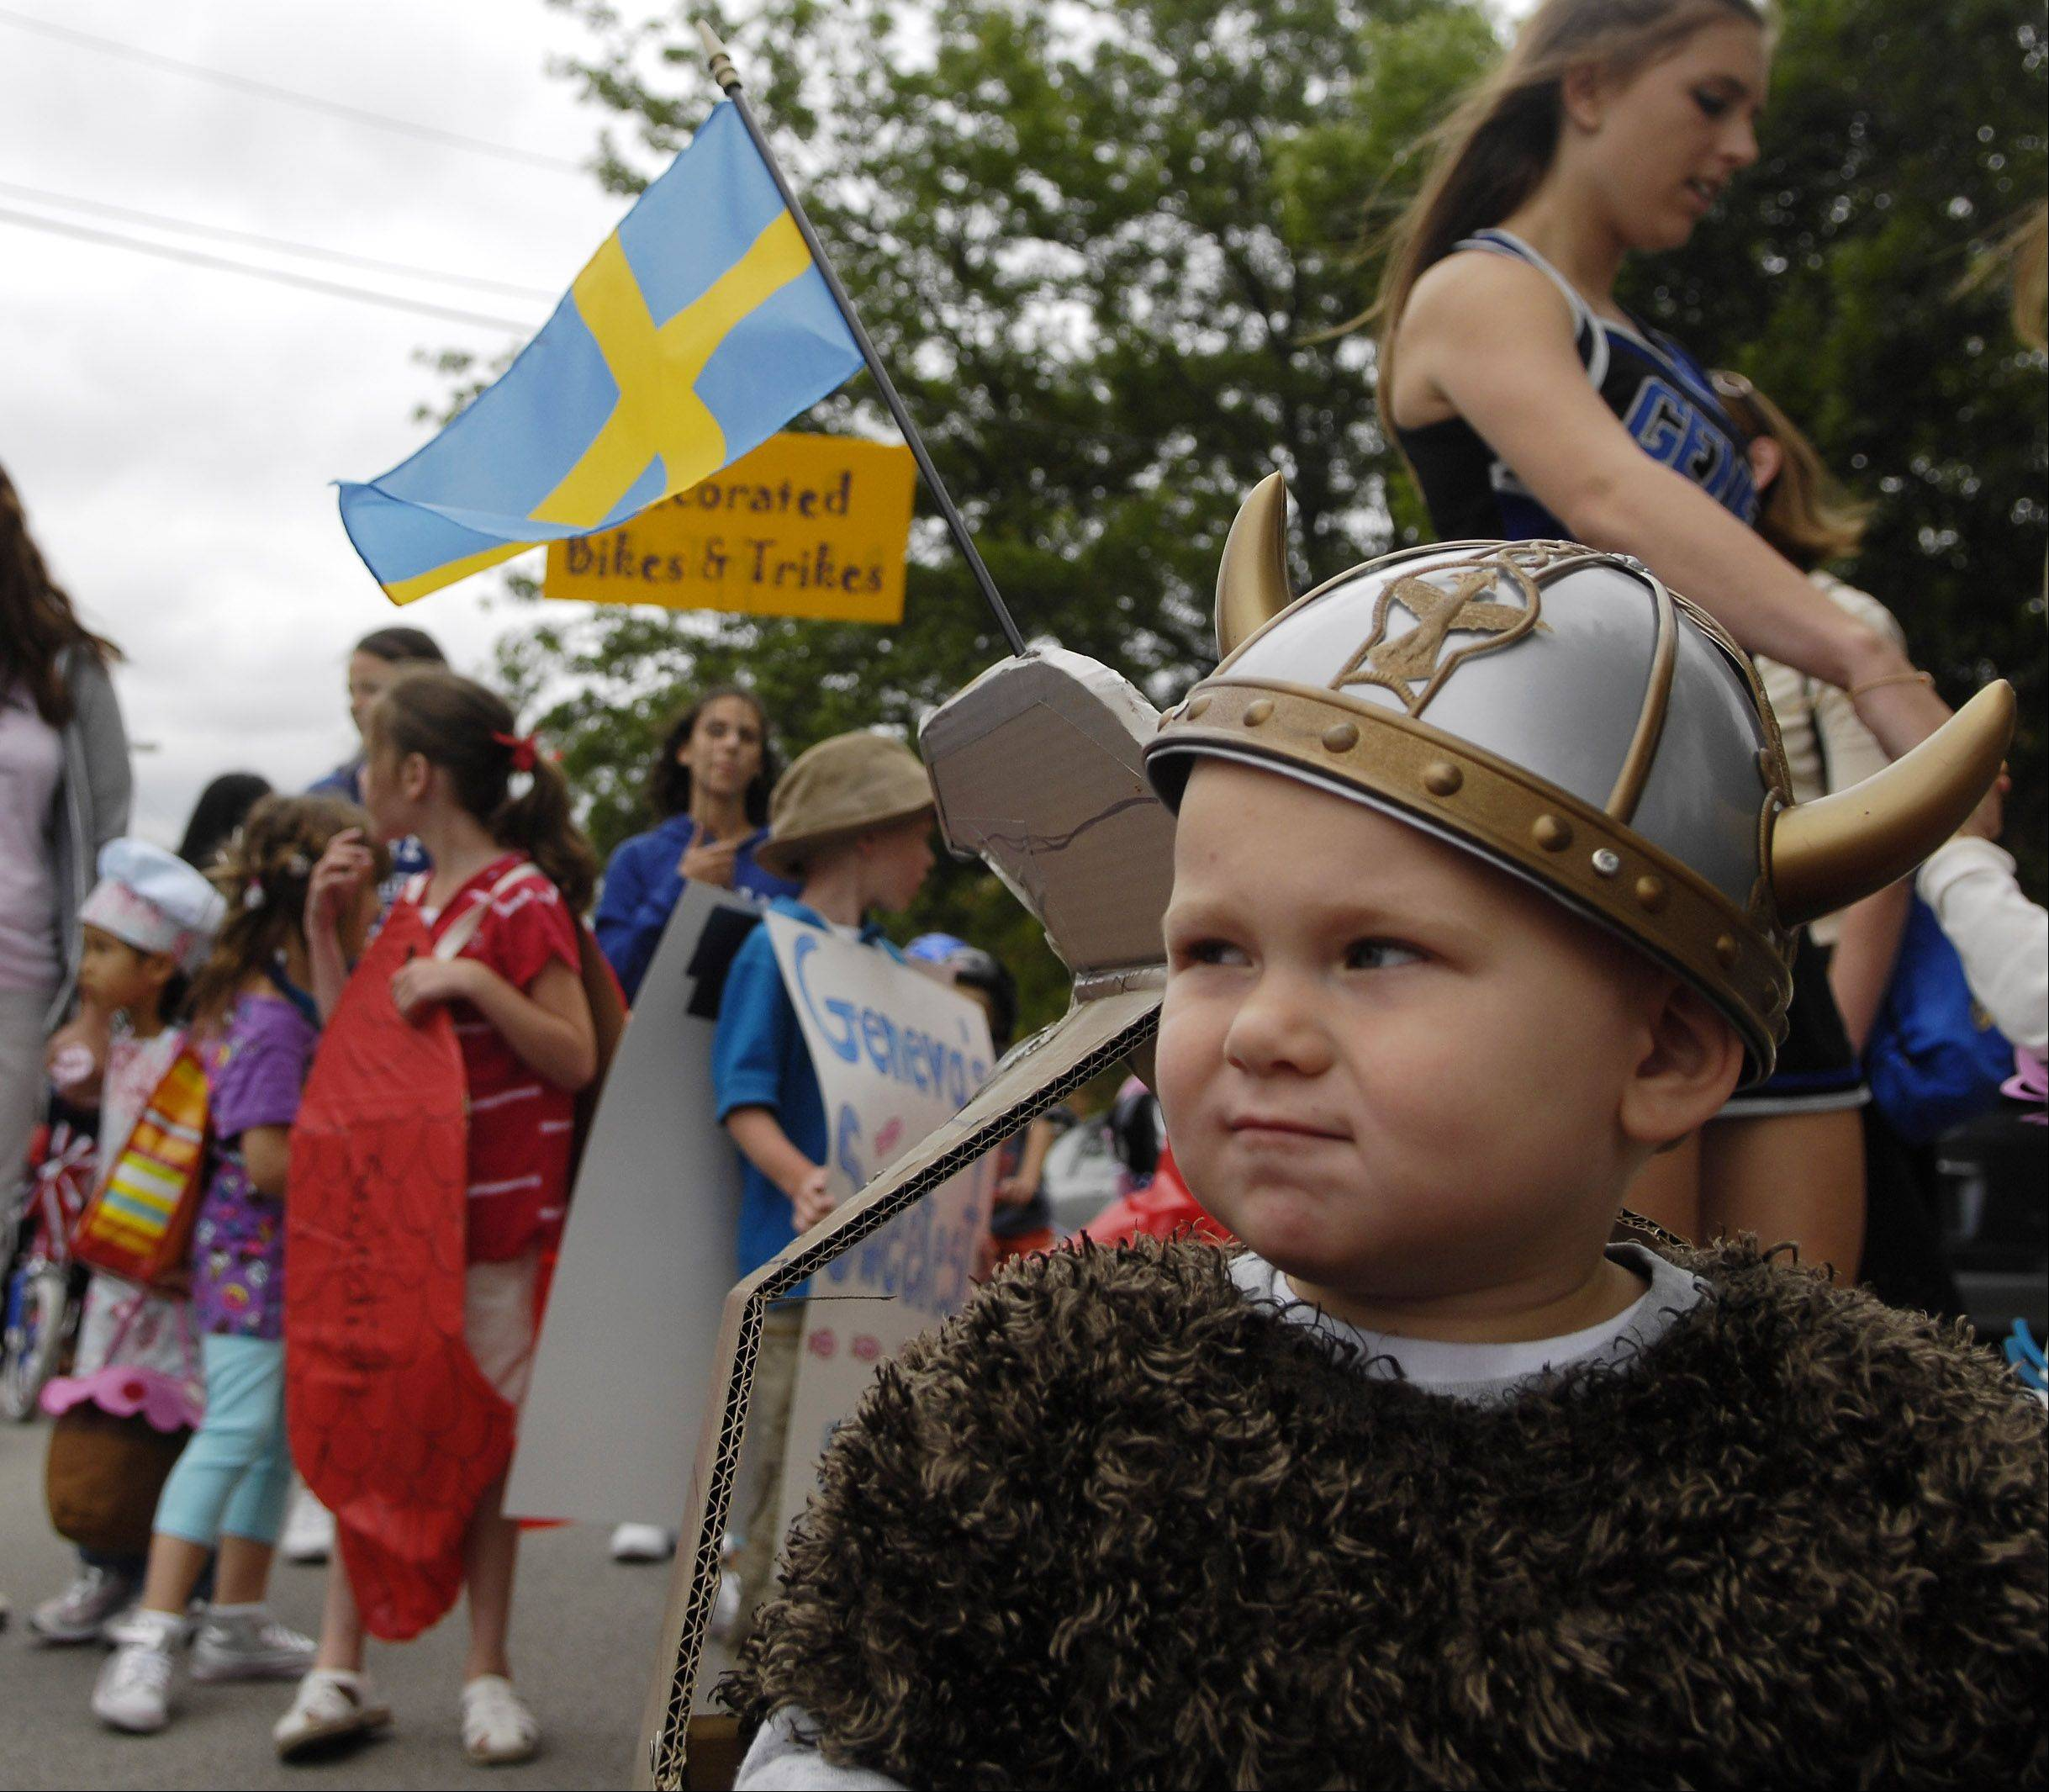 Jaxon Rogers, 2, of Geenva waits for the fun to begin during the kids parade at last year's Swedish Days in Geneva.